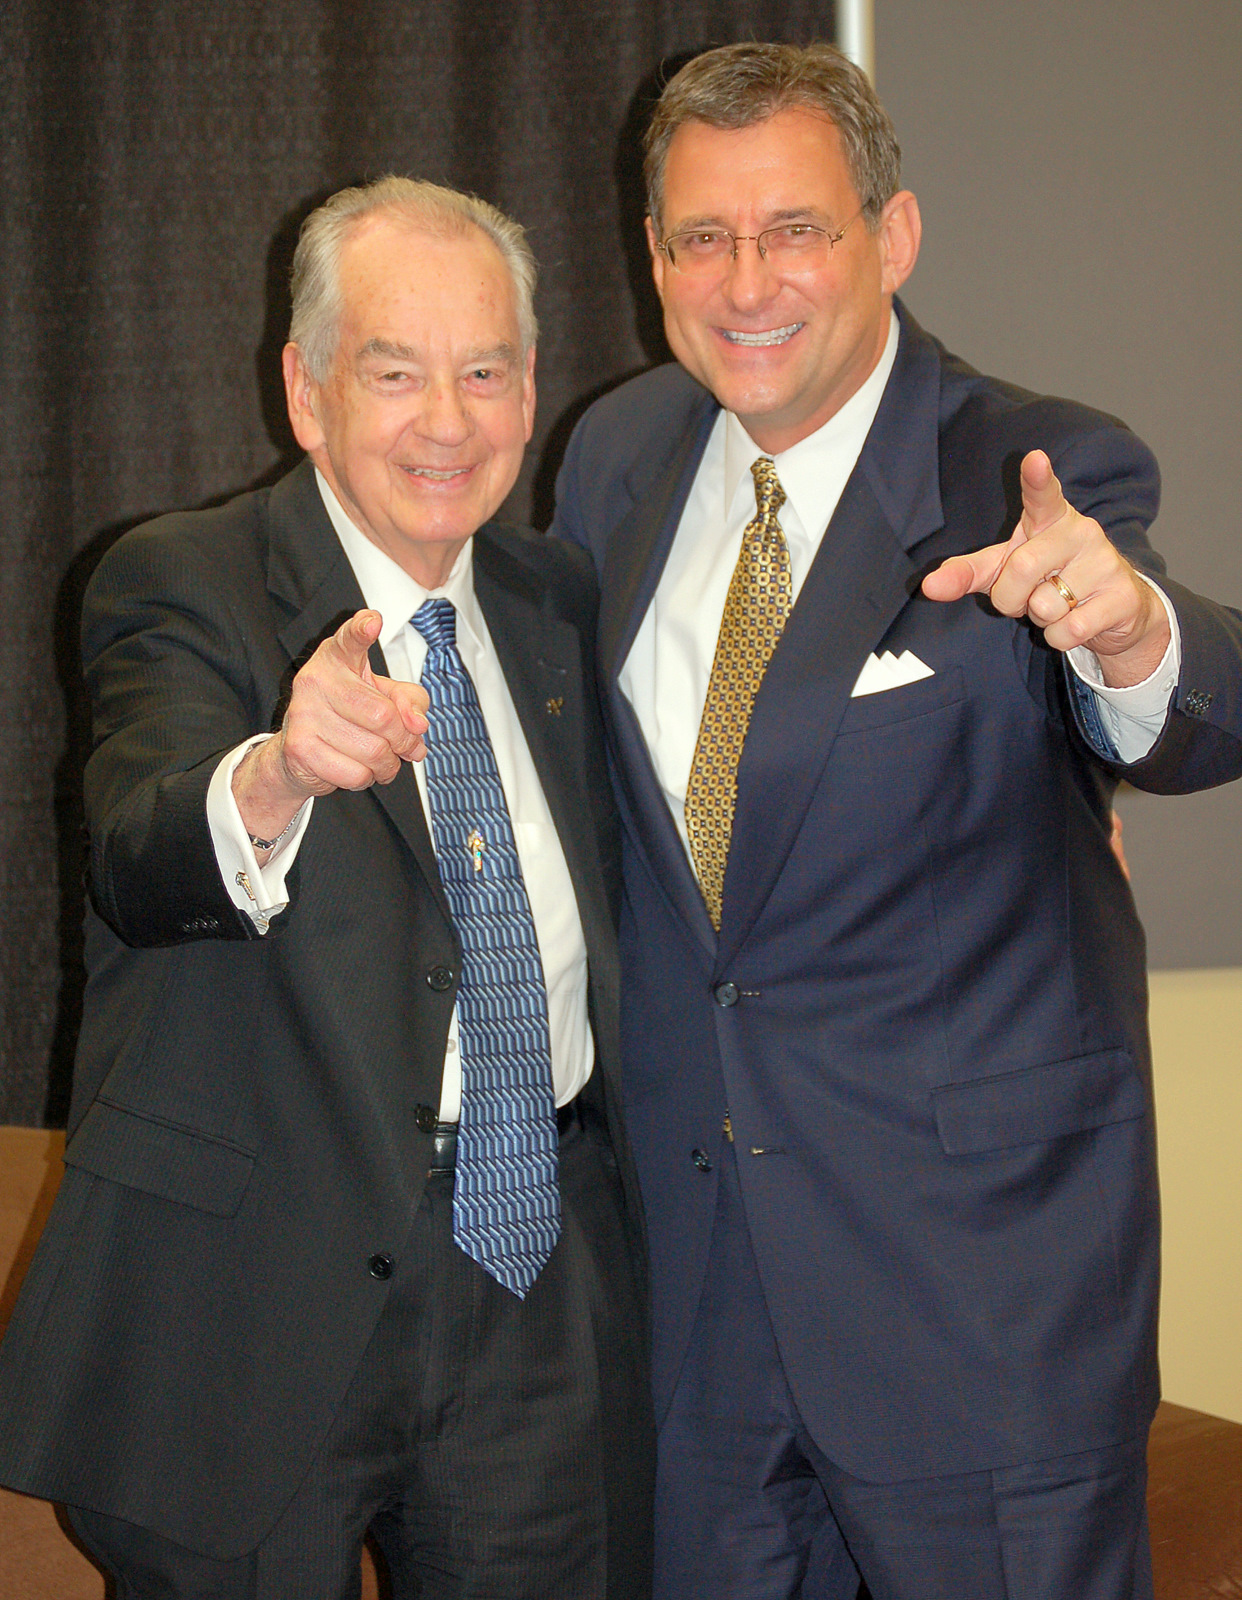 Zig Ziglar & Dan Snell saying - We will SEE YOU AT THE TOP.JPG